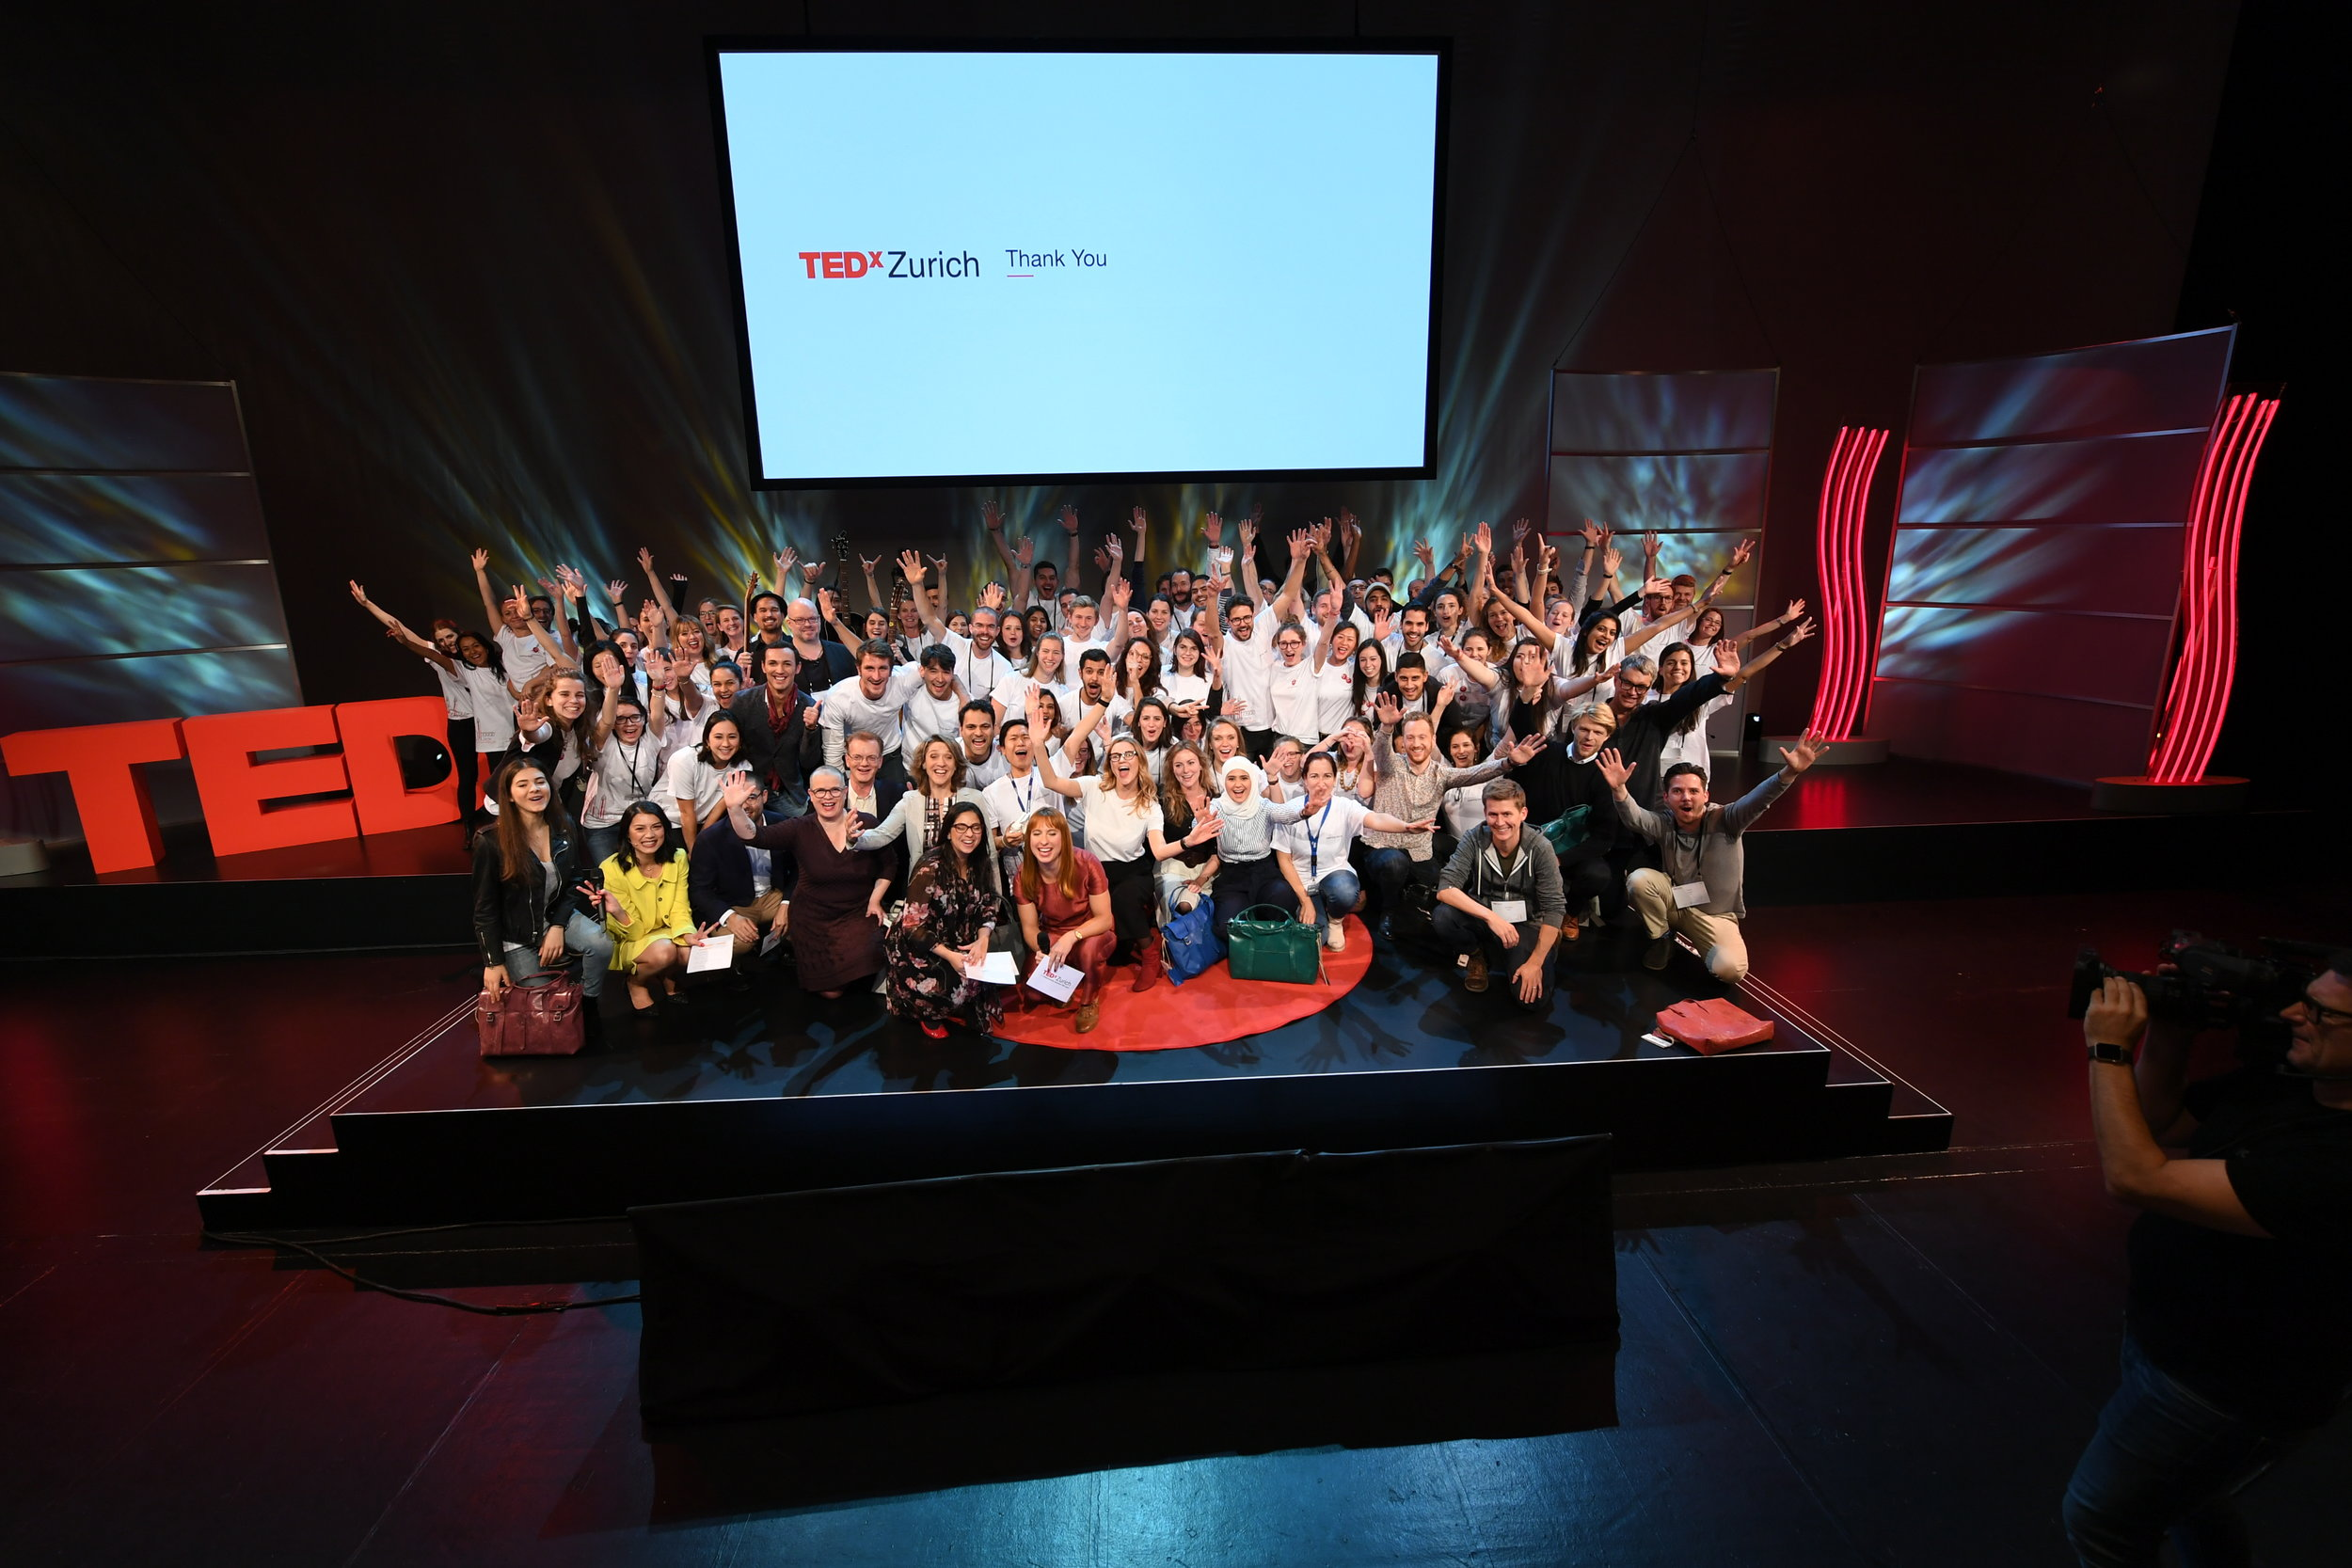 Thank you to all the great speakers and amazing TEDxZurich volunteers and team members who put this together in their free time! Photo: Boris Baldinger